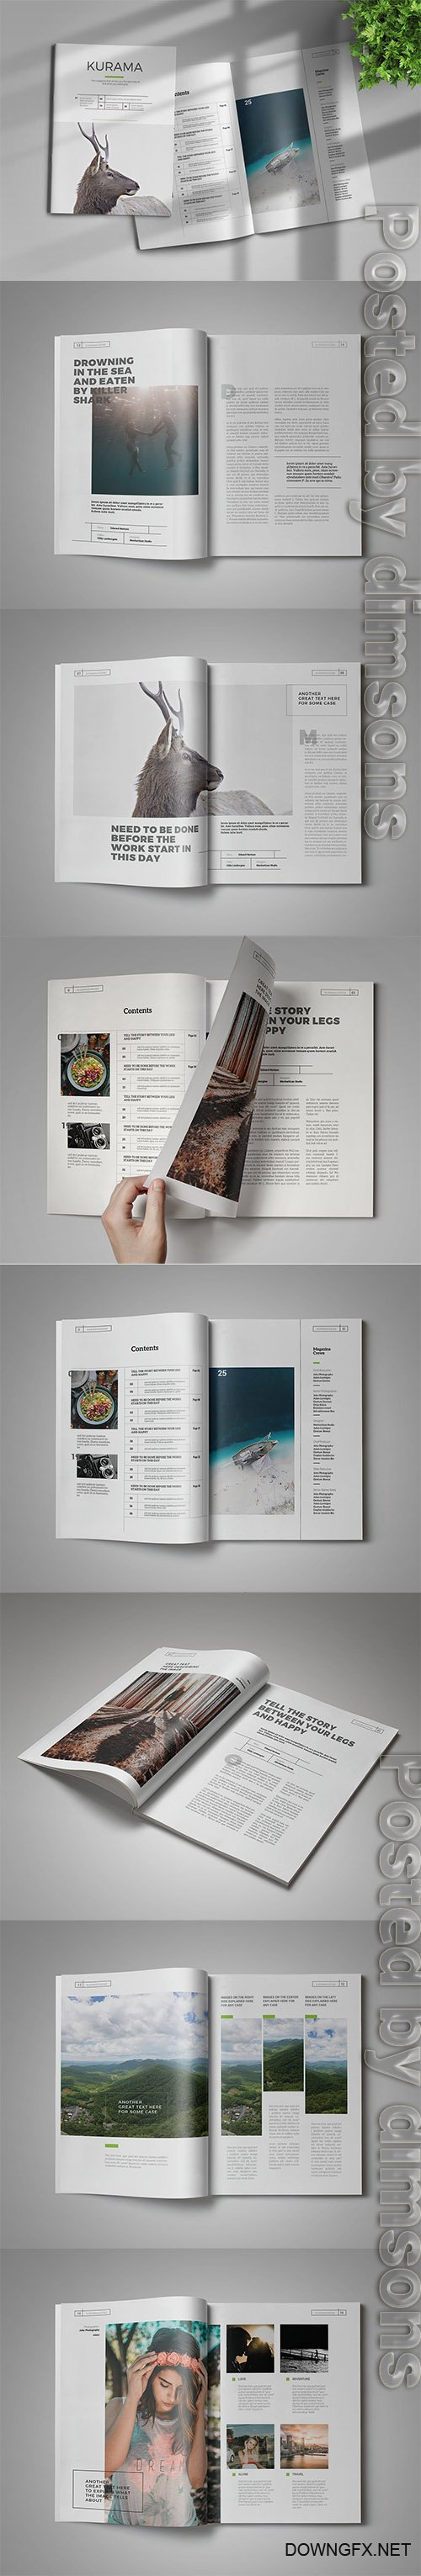 InDesign Magazine Template INDD